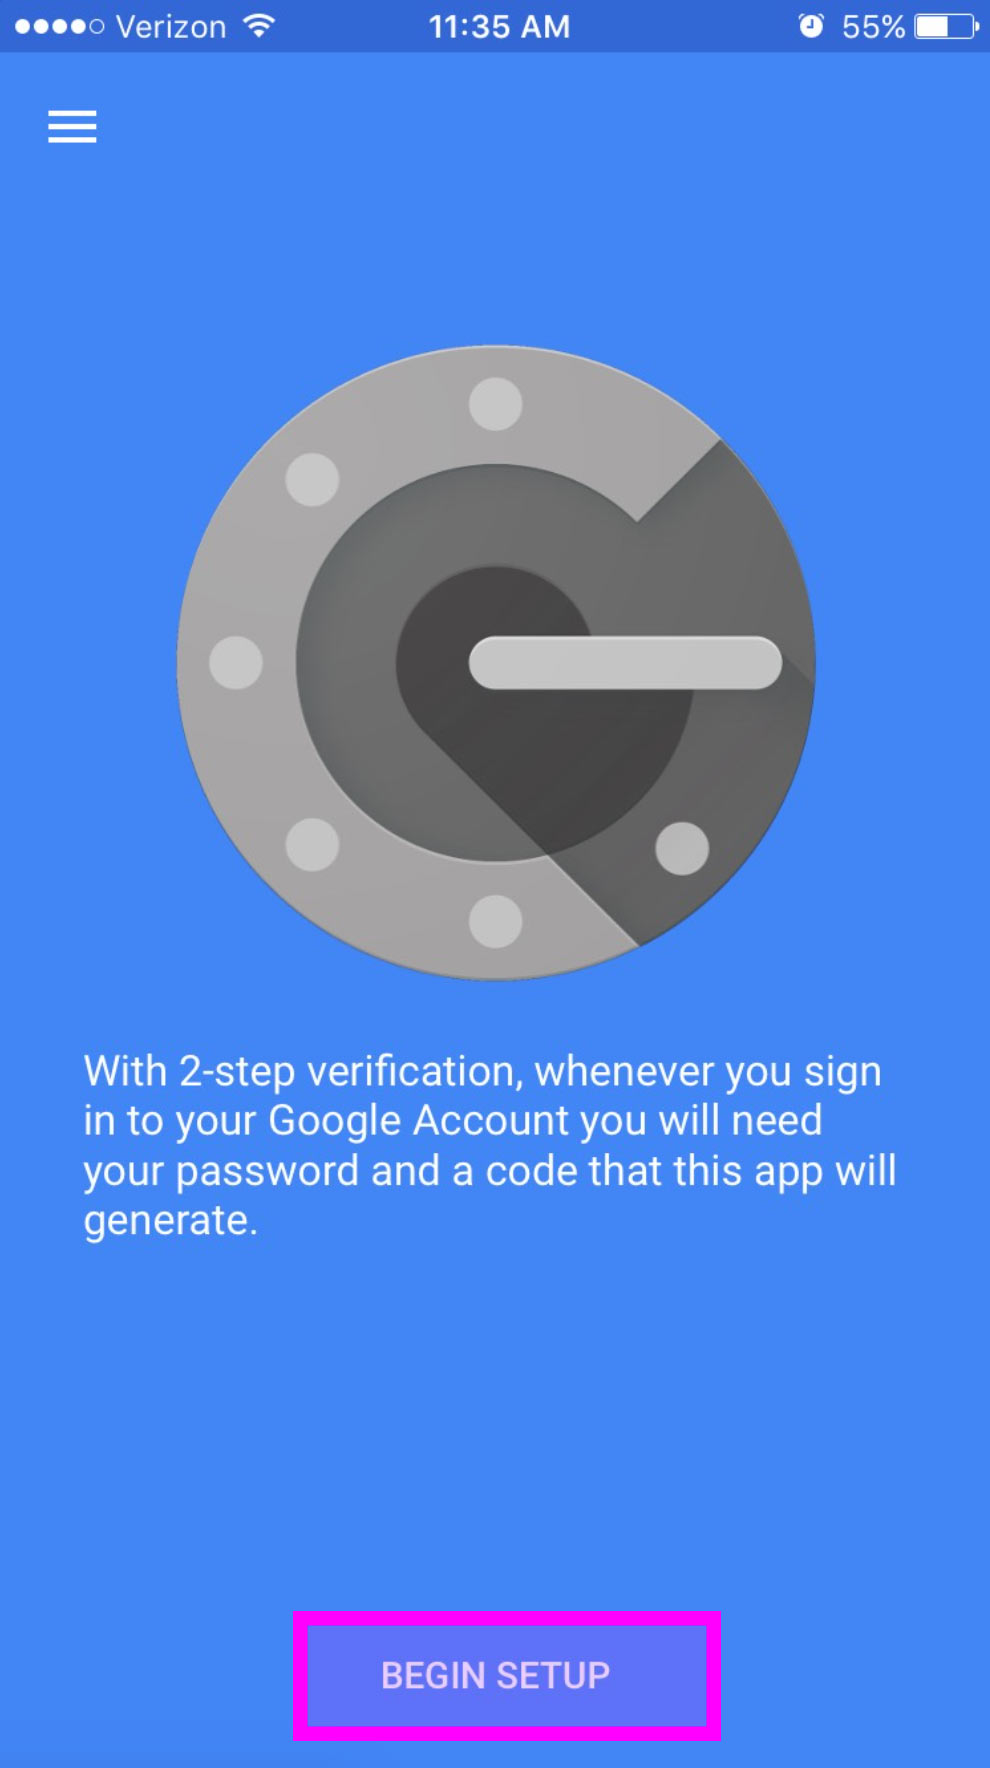 Google Authenticator App setup screen